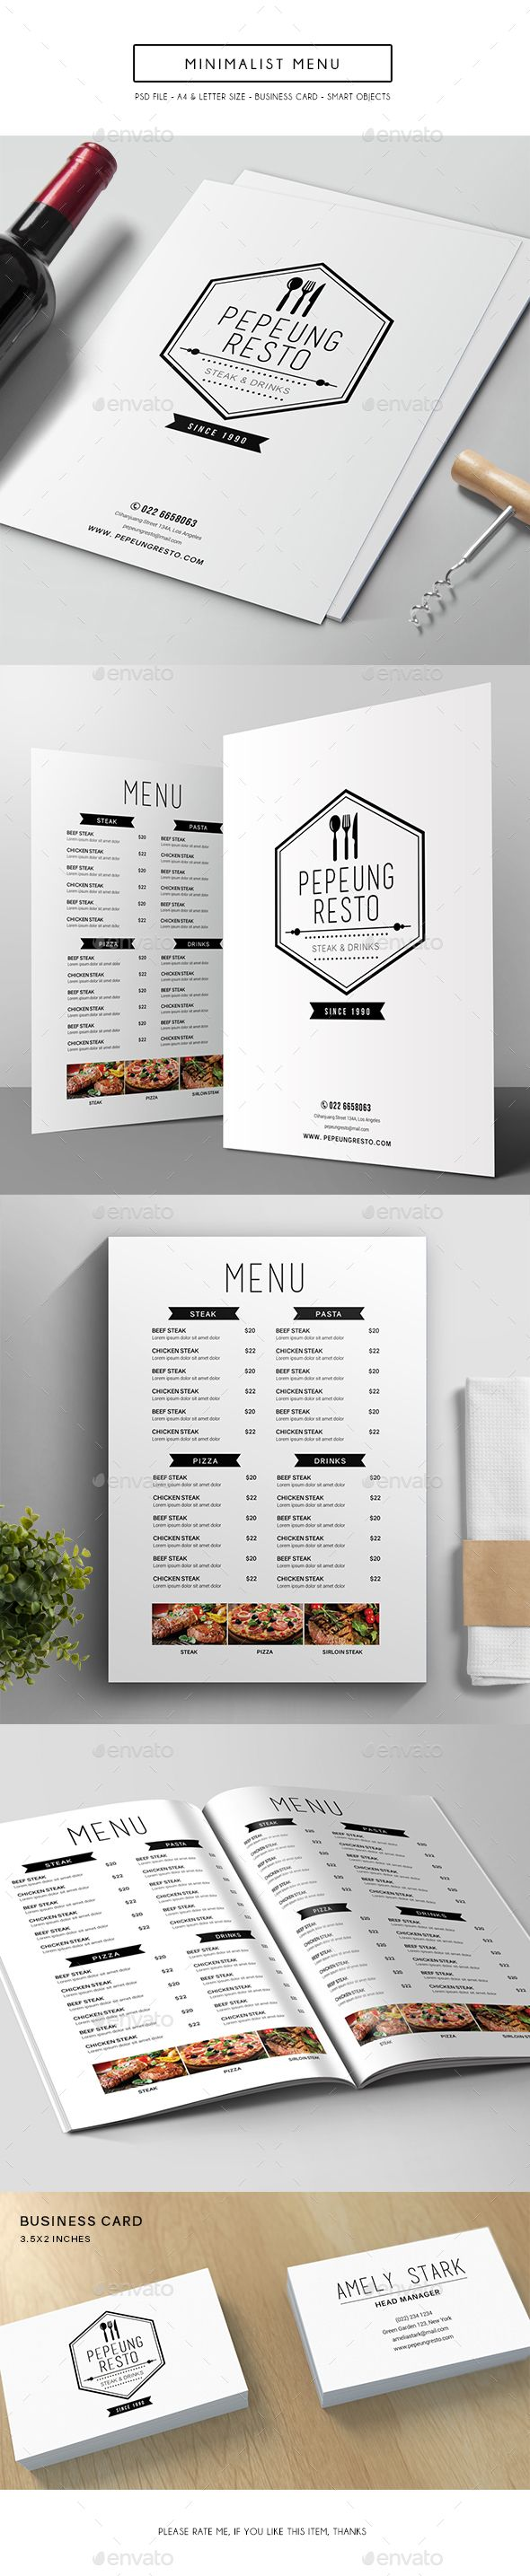 Minimalist Menu Template PSD #design Download: http://graphicriver.net/item/minimalist-menu/14276607?ref=ksioks